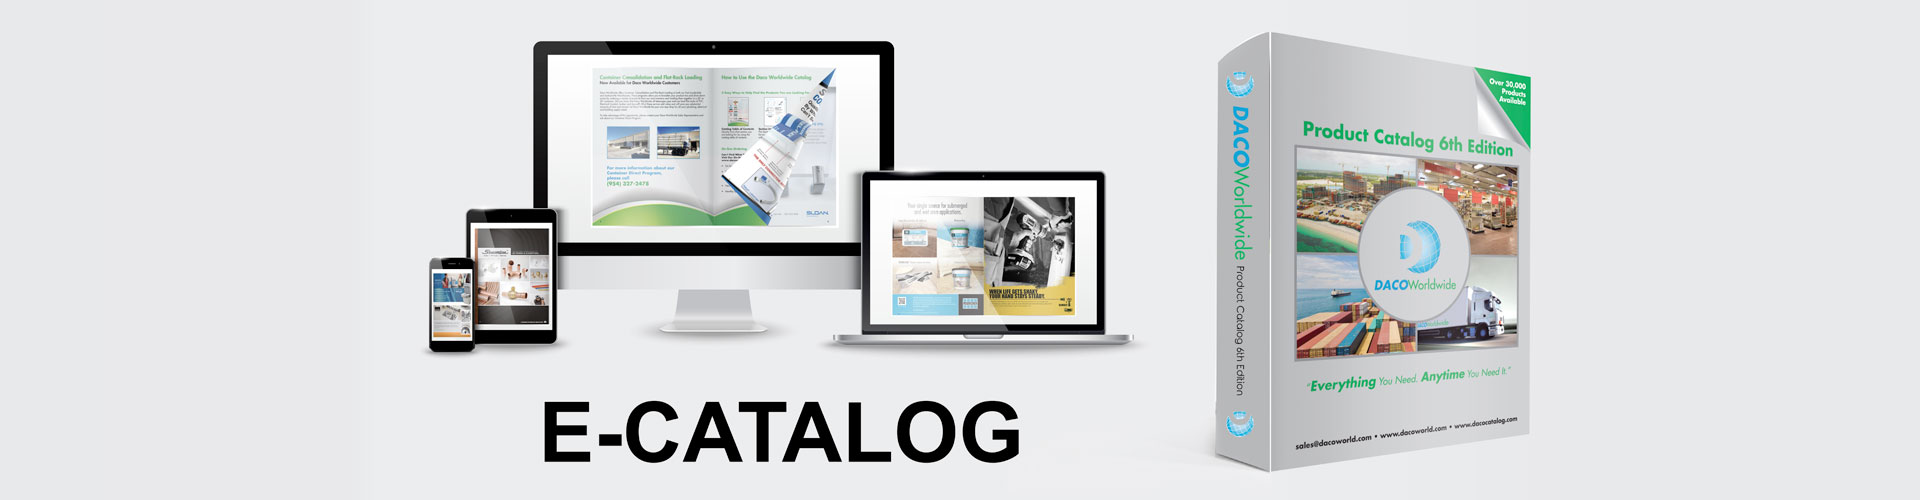 Online Catalog of Bulding, Electrical and Plumbing Materials | Daco ...